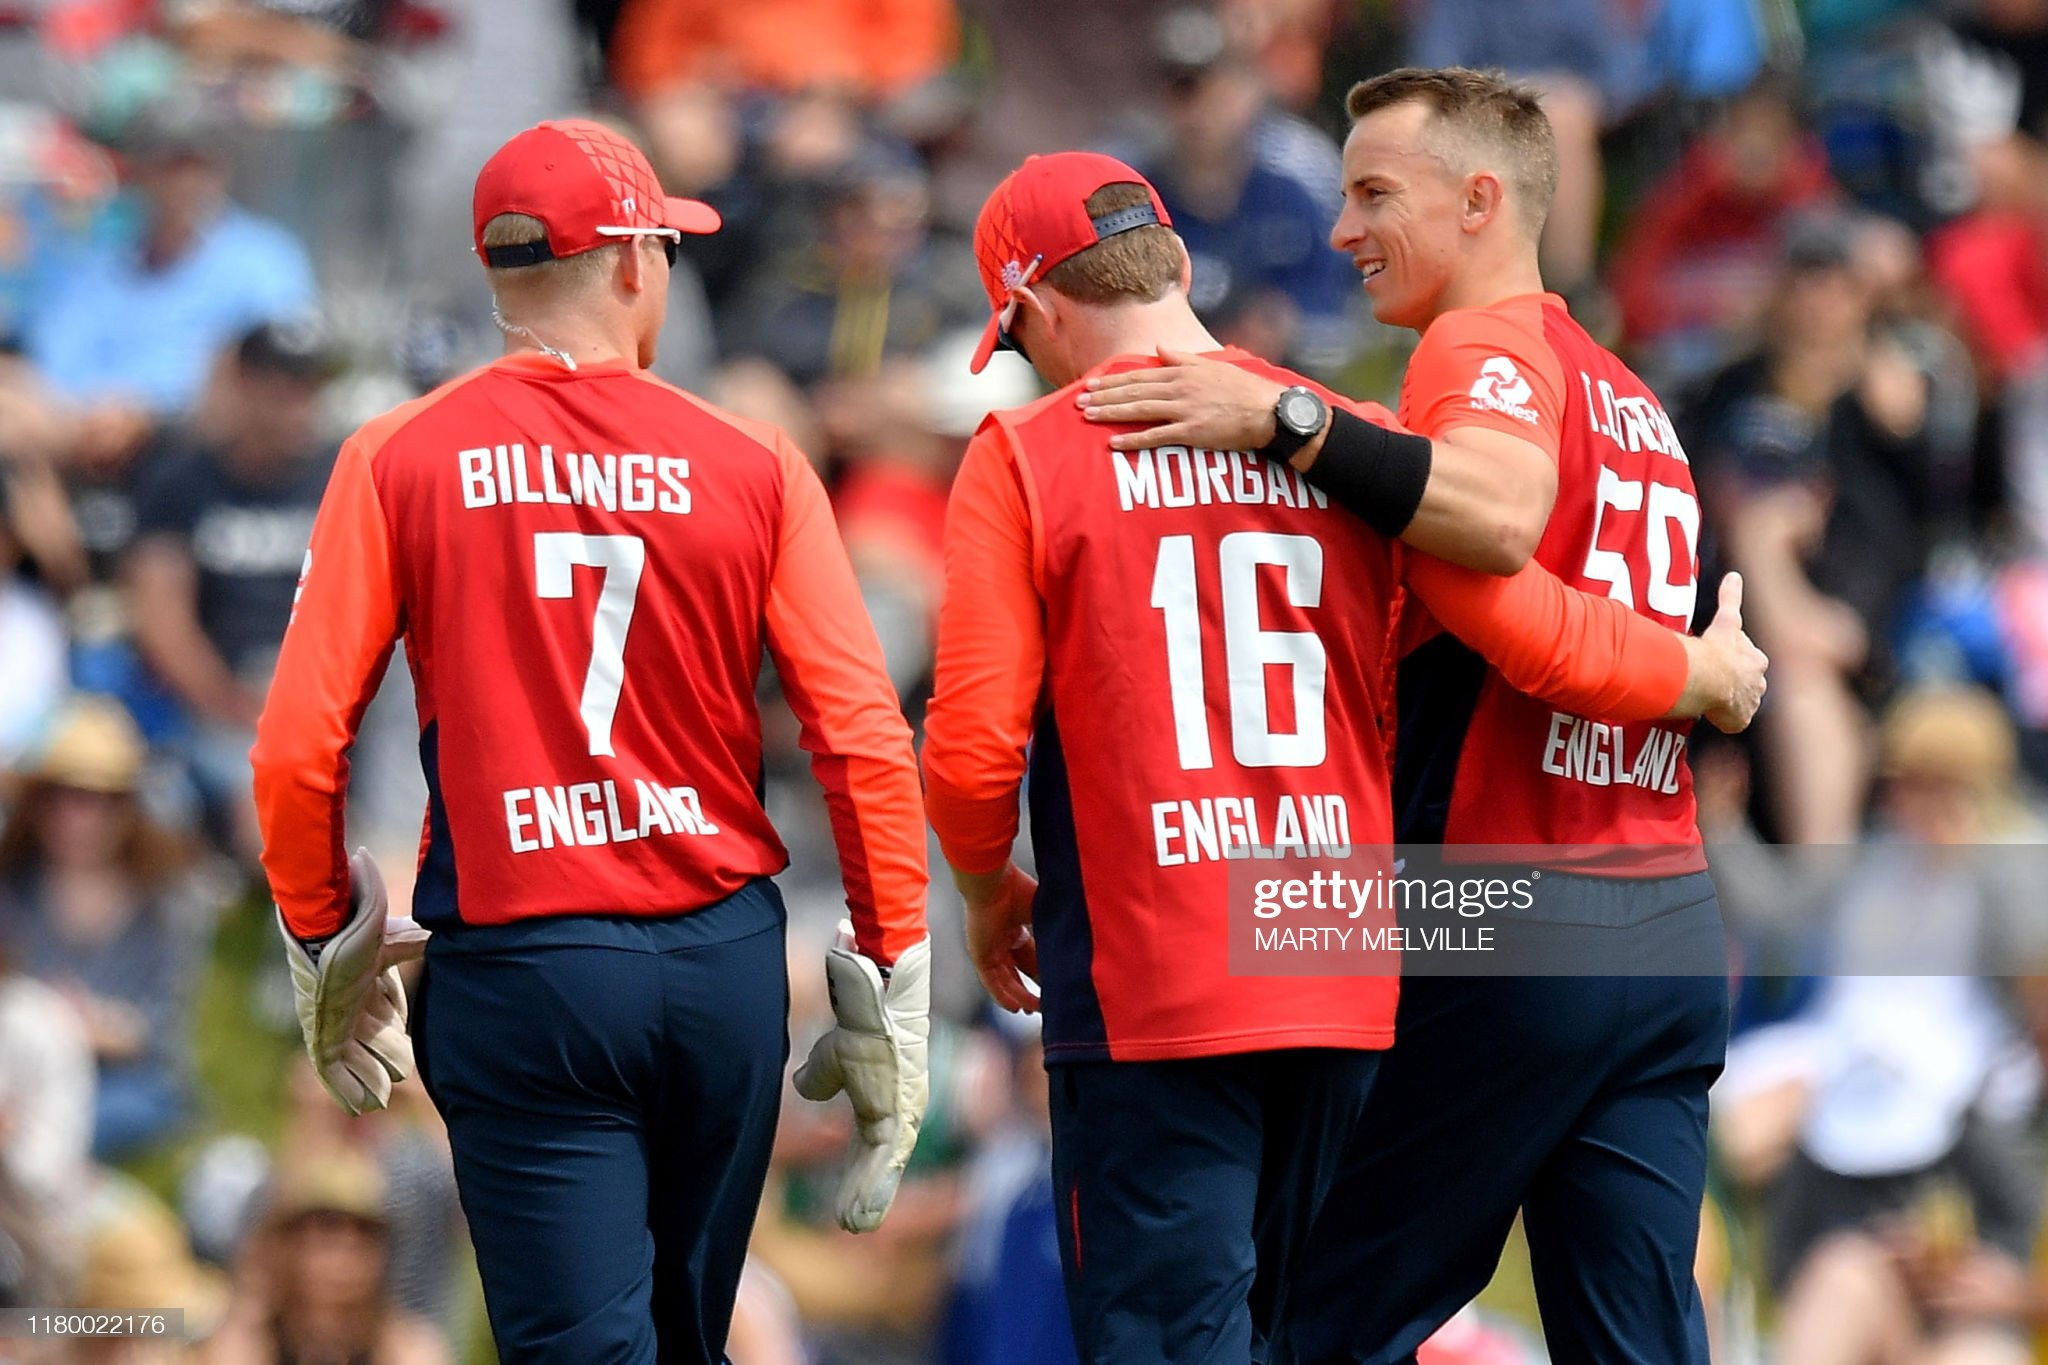 England's Tom Curran (R) celebrates with captain Eoin Morgan and wicket-keeper Sam Billings after taking the wicket of New Zealand's Colin de Grandhomme during the Twenty20 cricket match between New Zealand and England at Saxton Oval in Nelson on November 5, 2019.